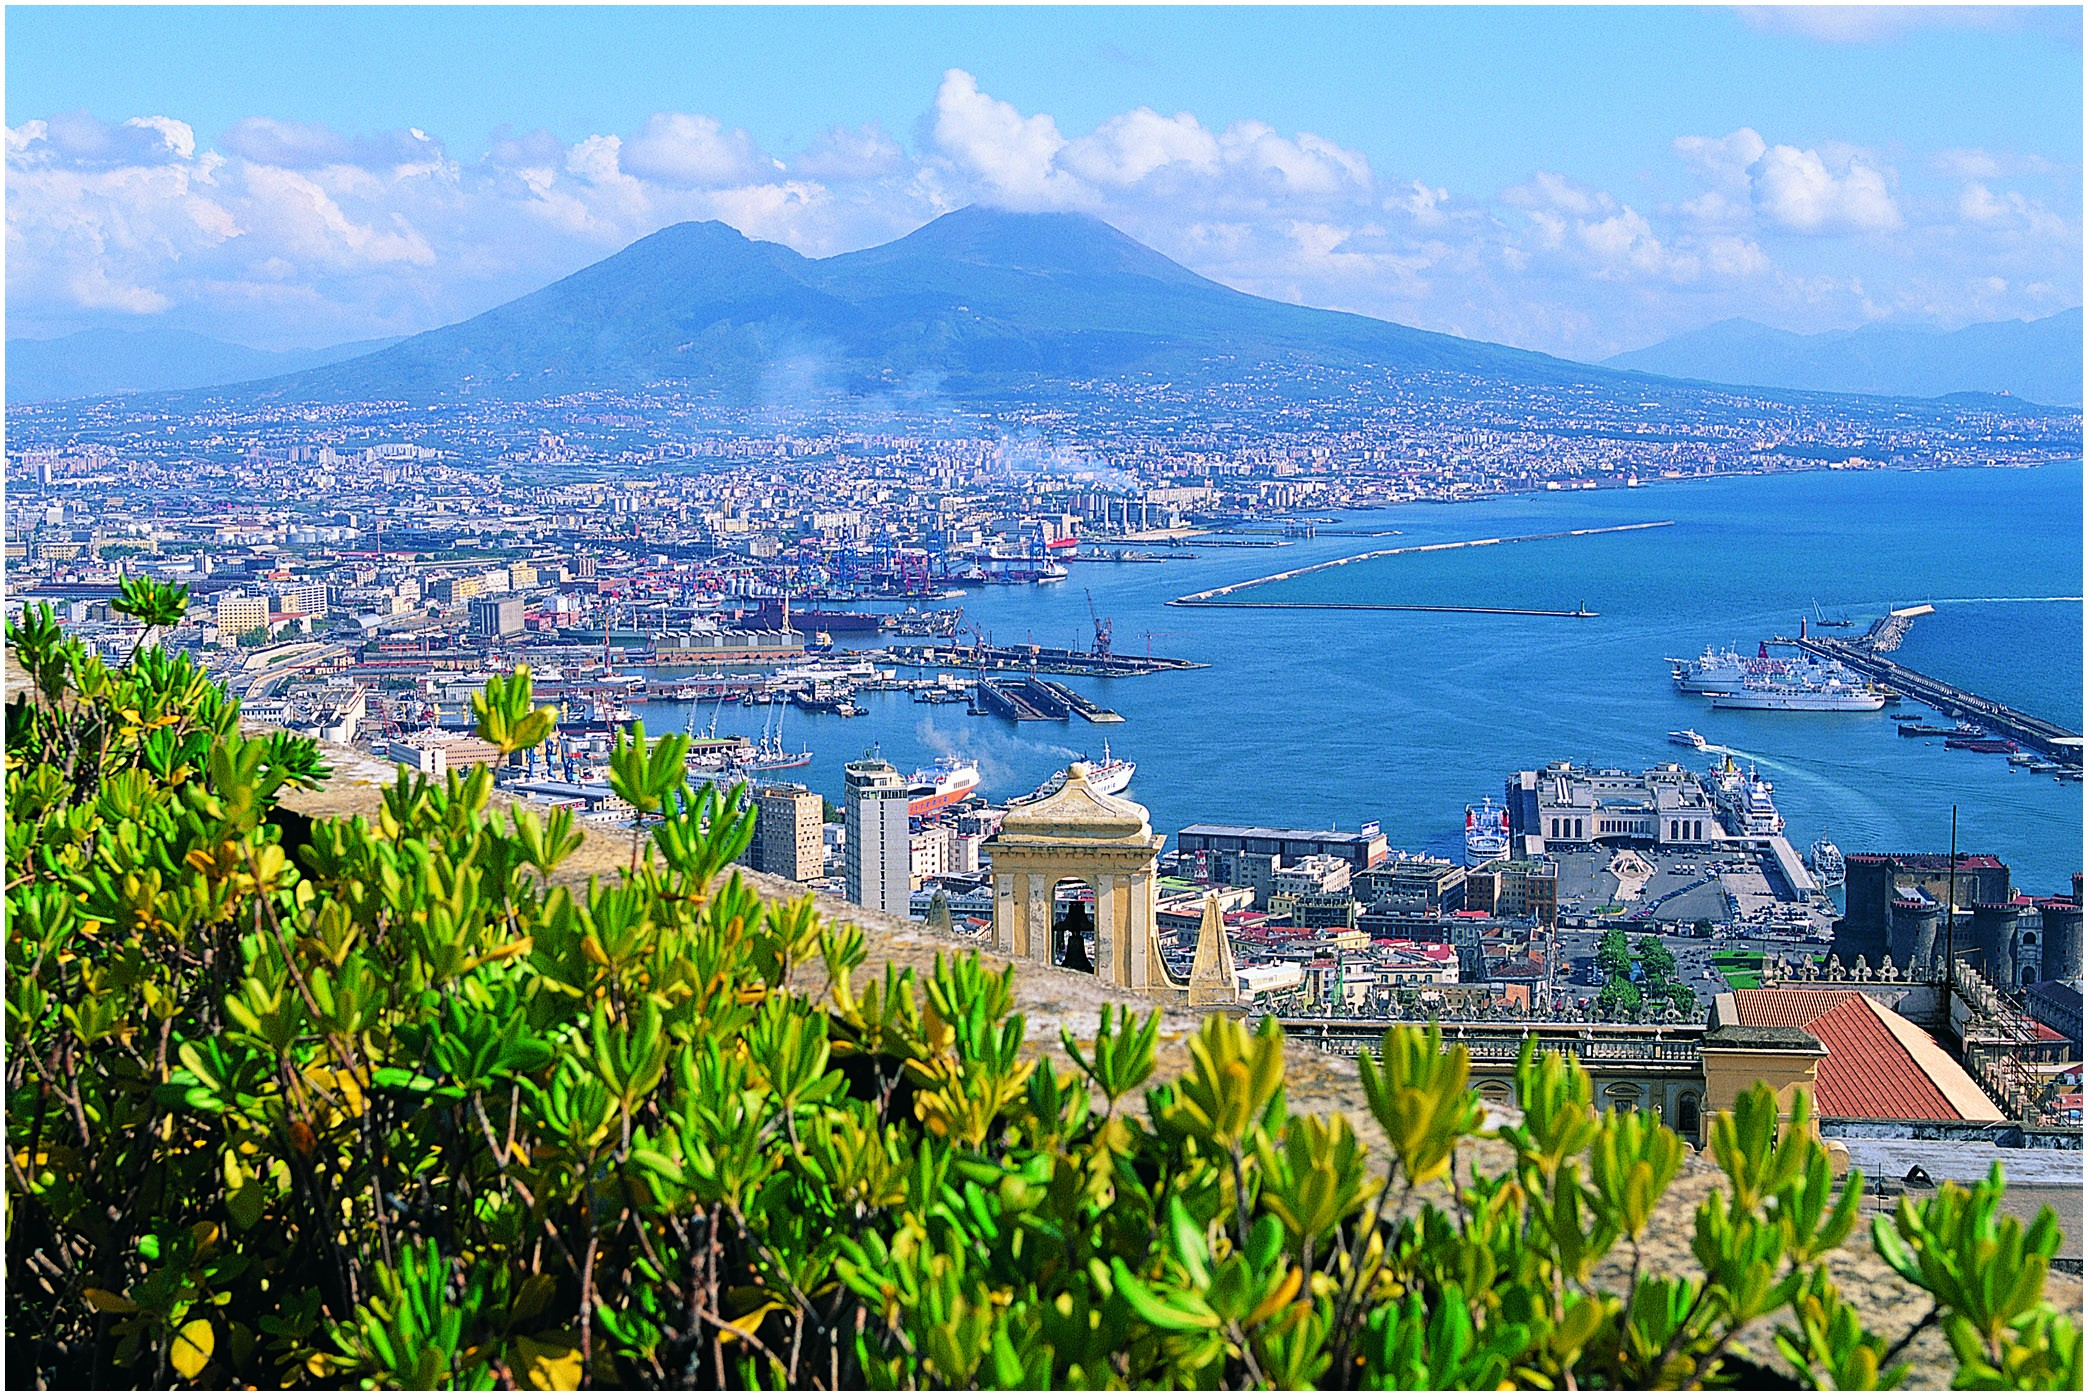 Beach In Naples Italy Beautiful Beaches Nearest to Napoli Italy